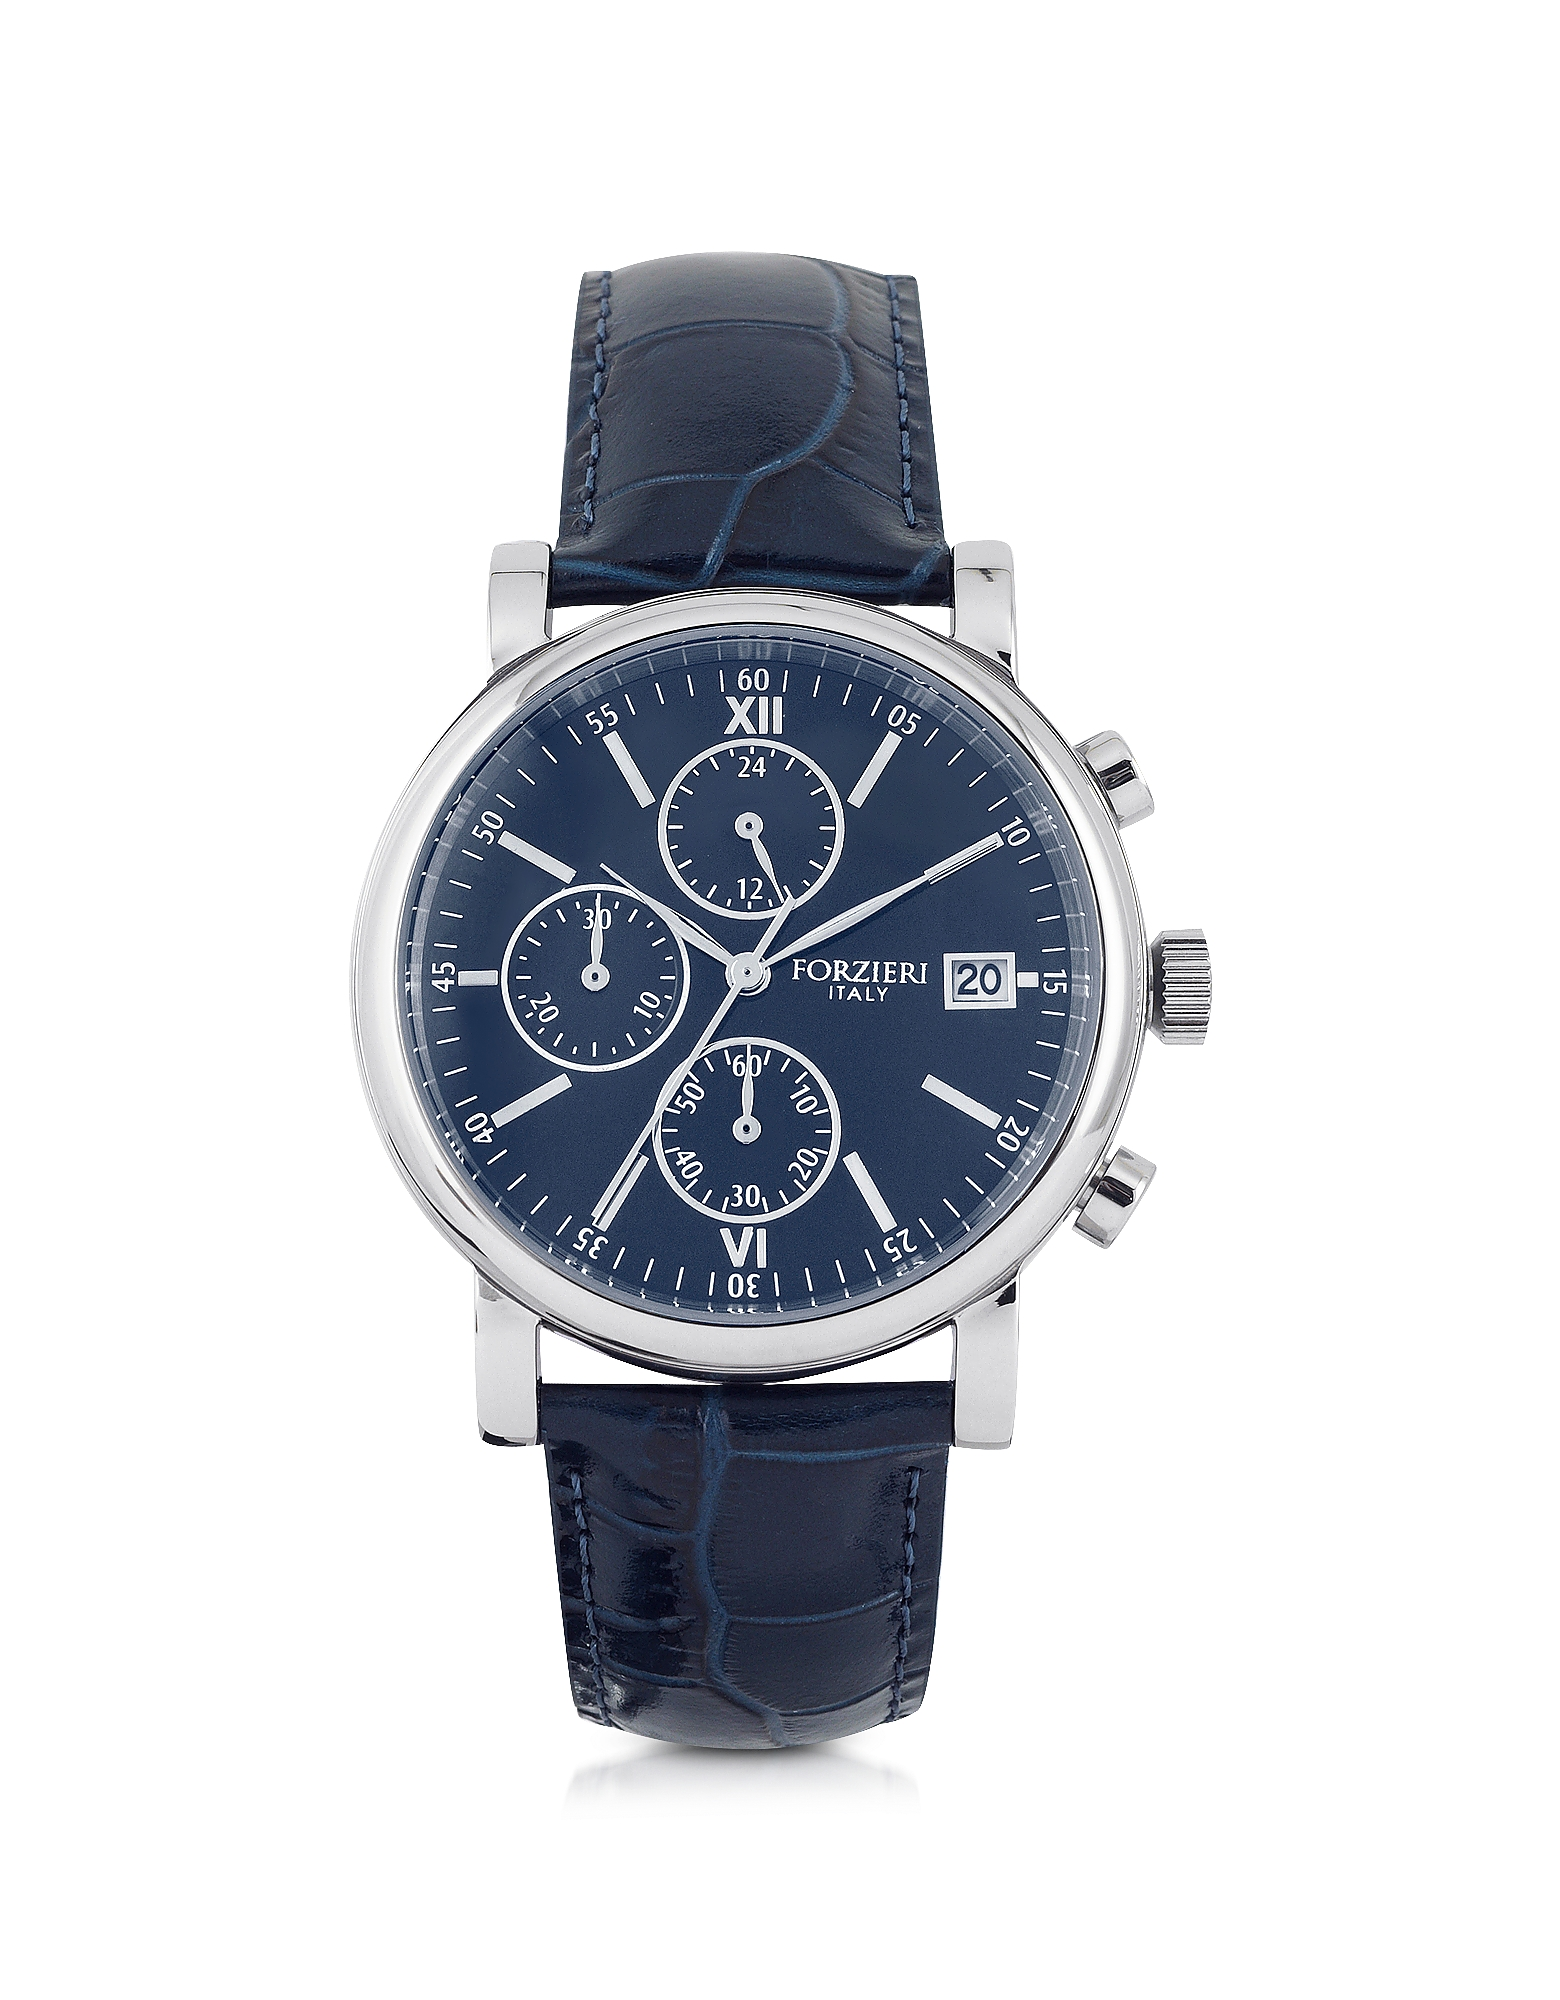 Forzieri Men's Watches, Berlino Silver Tone Stainless Steel Case and Genuine Embossed Leather Men's